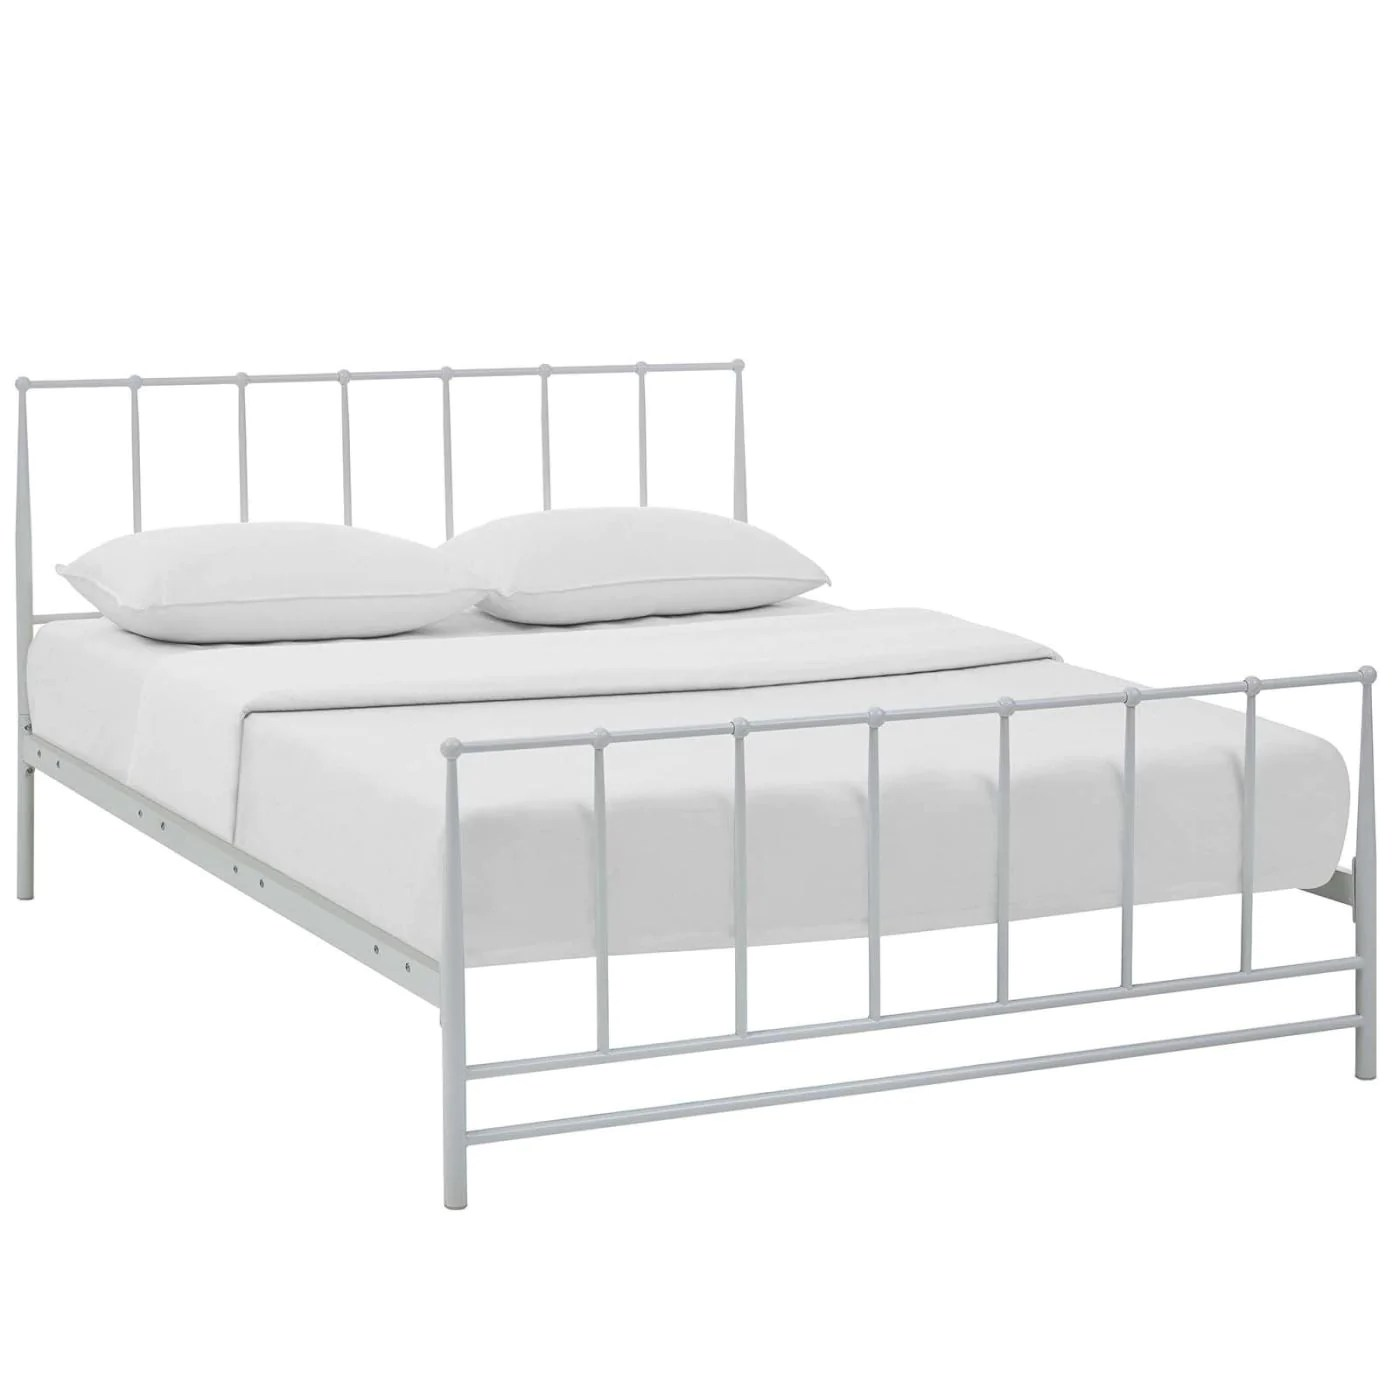 Queen Bed Sale Modway Beds On Sale Mod 5482 Whi Estate Queen Bed Only Only 242 25 At Contemporary Furniture Warehouse